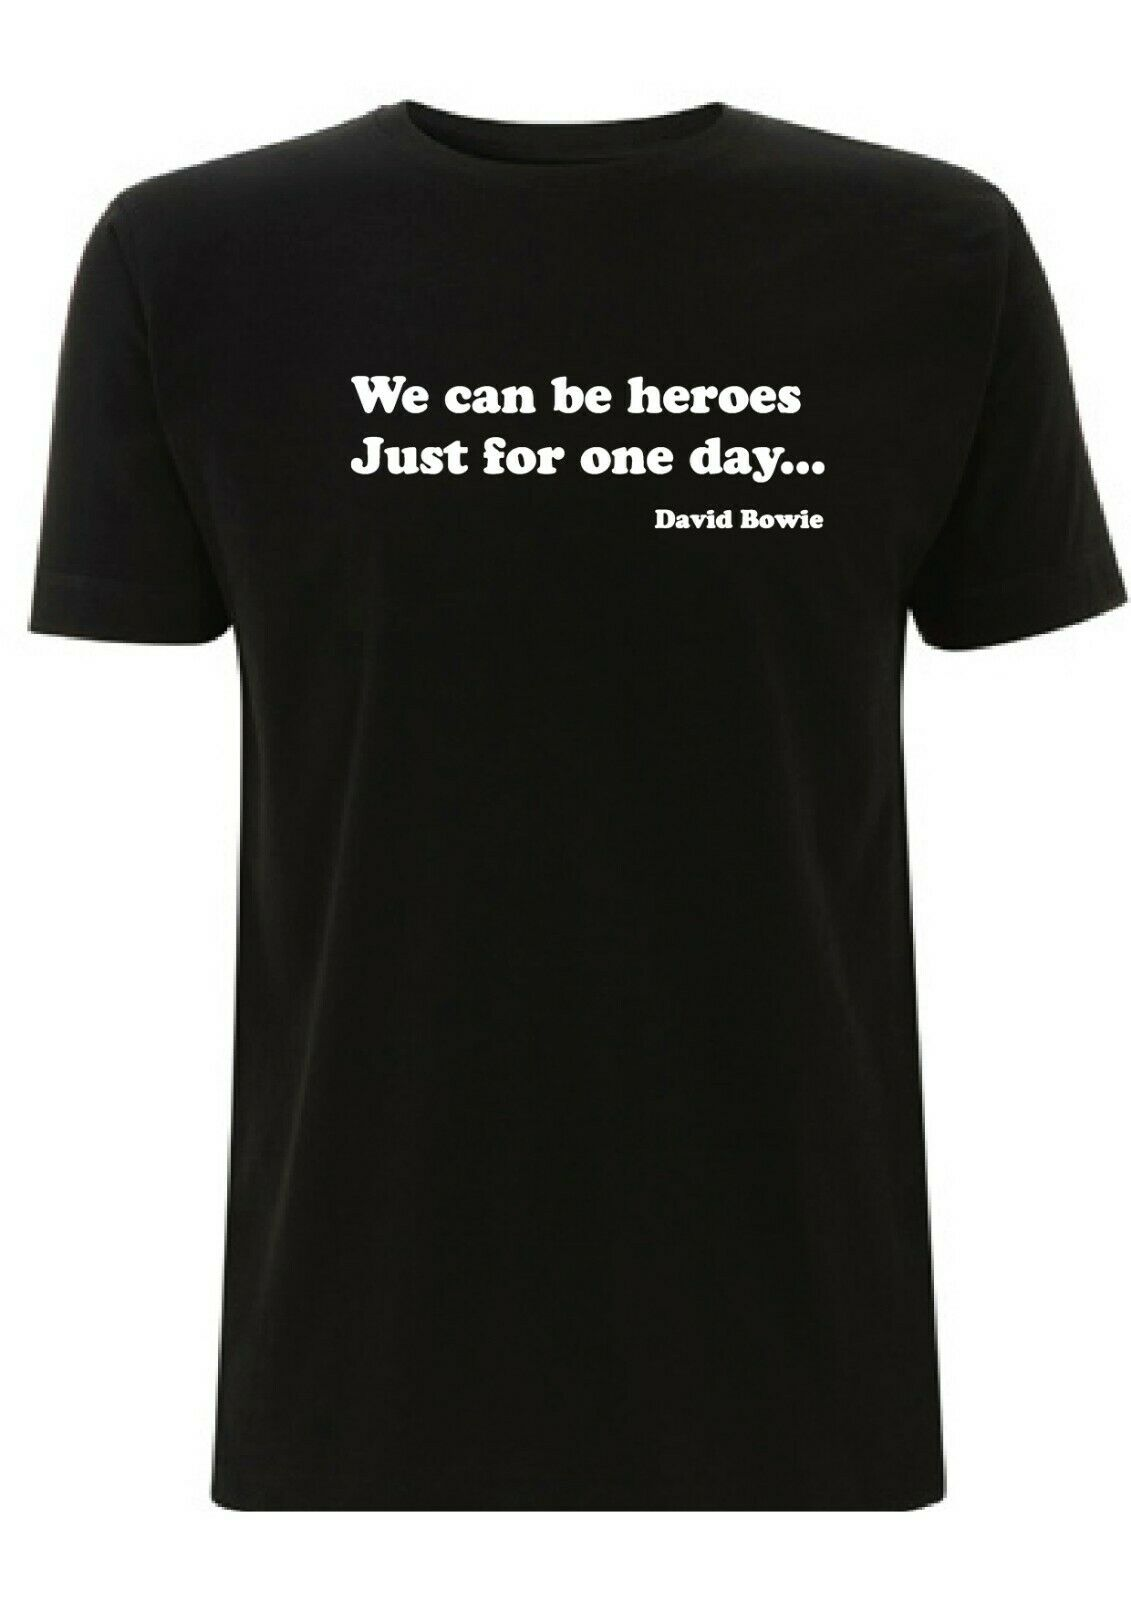 Heroes David Bowie Song Lyrics T Shirt Quote We can be heroes just for one day 2020 High quality Brand T shirt Casual Short slee image